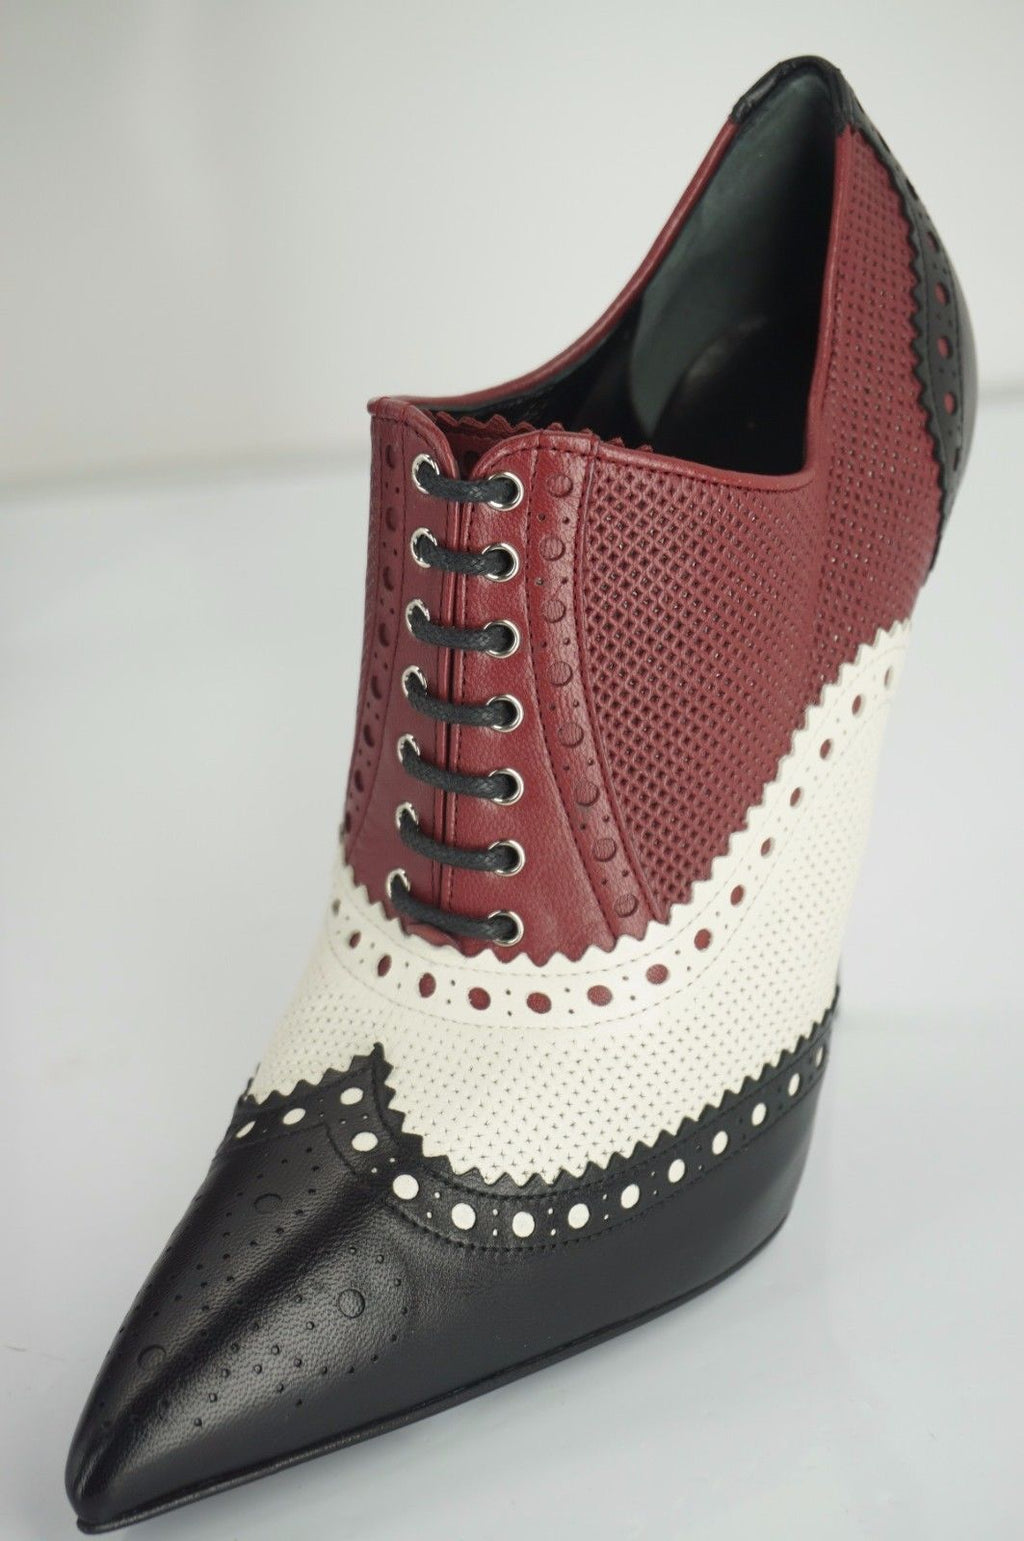 Gucci Womens Gia Tricolor Oxford Pump Red White Black Leather Size 35